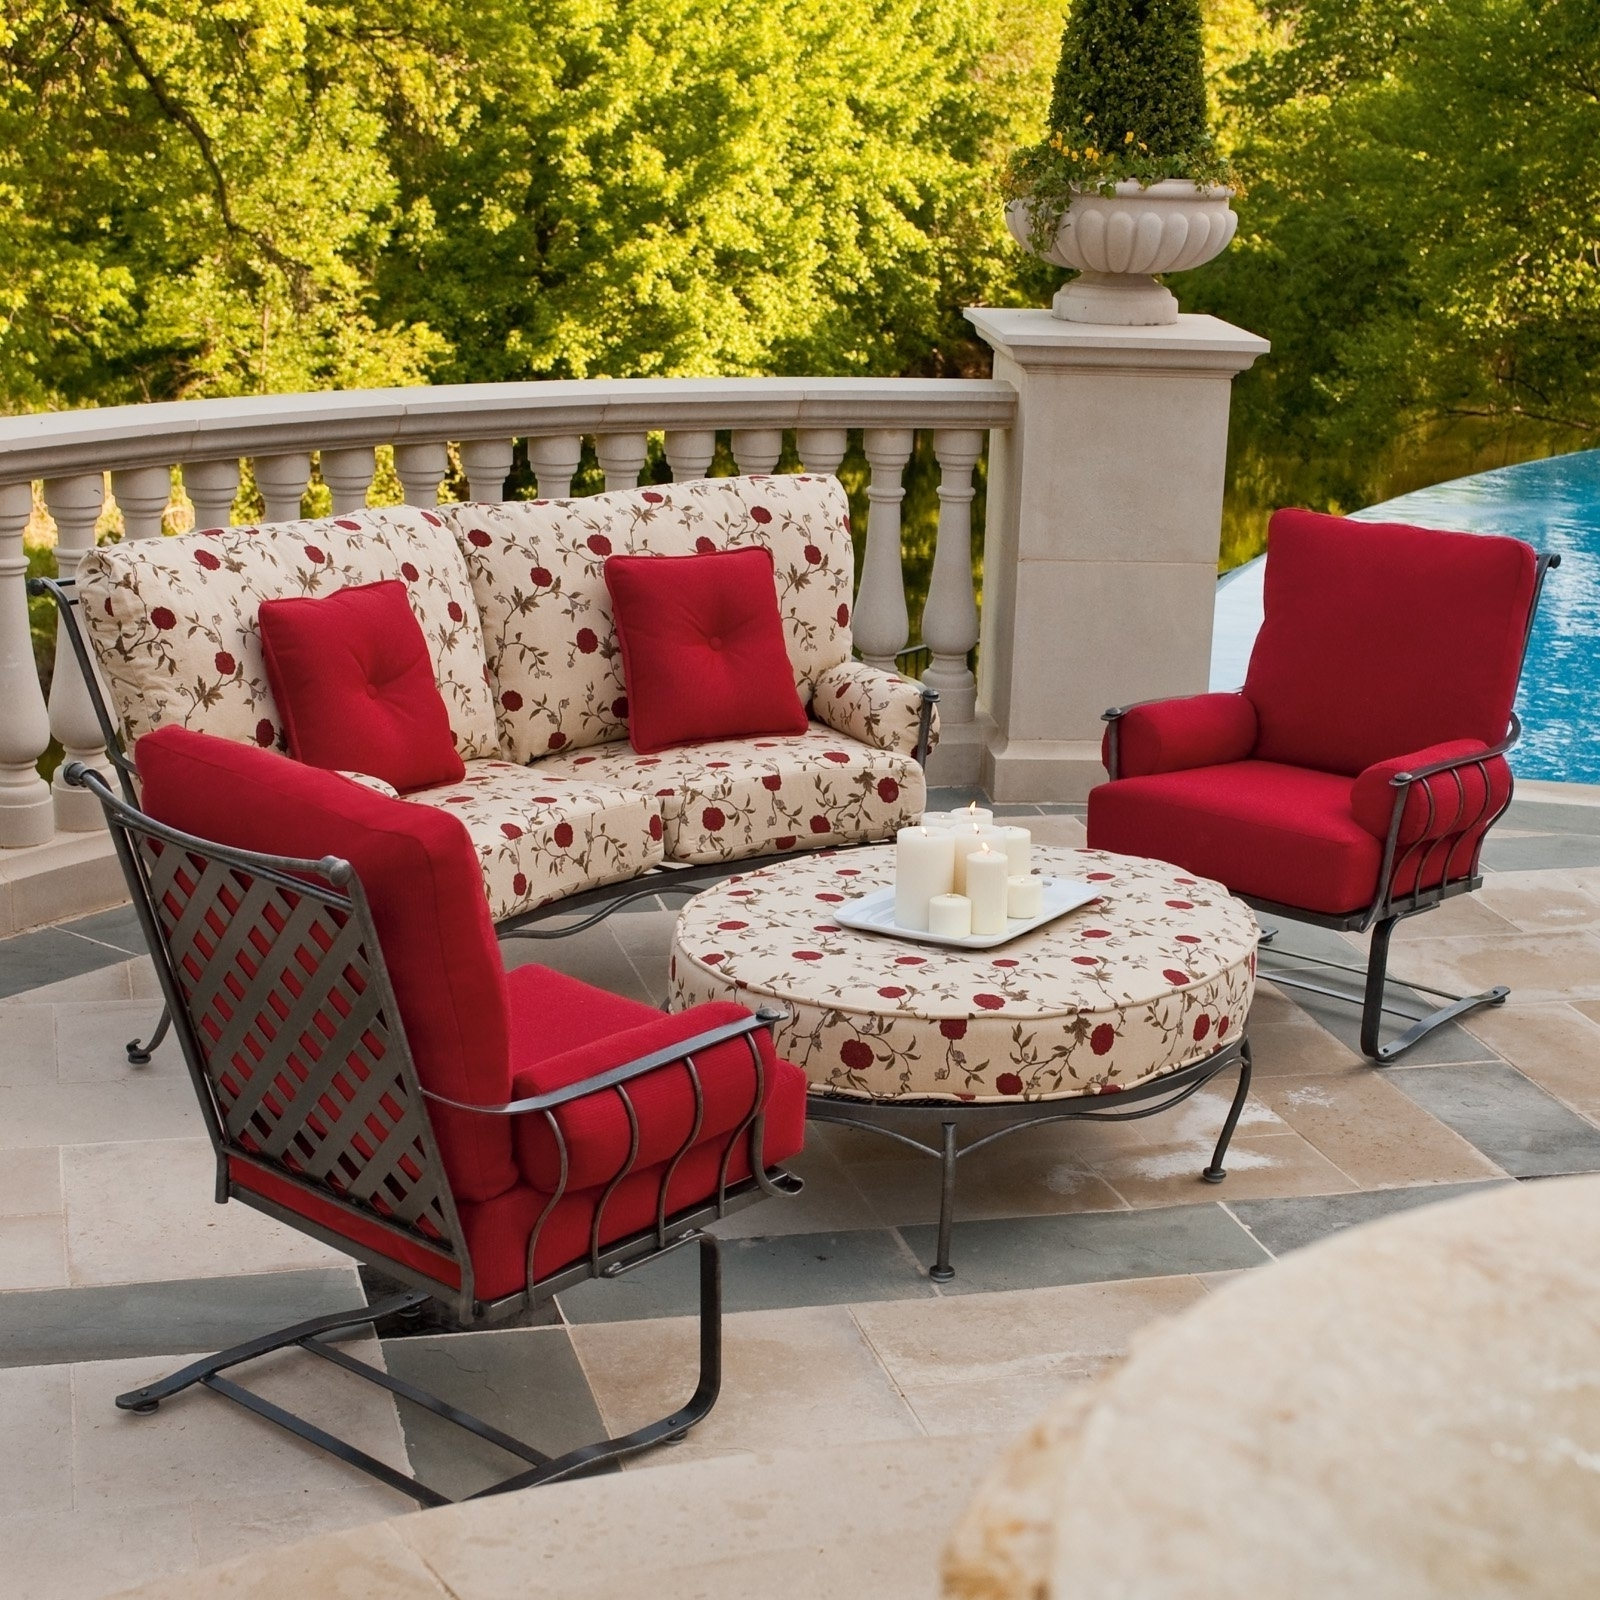 Target Patio Furniture Conversation Sets For Most Popular 56 Conversation Patio Sets Target Patio Conversation Sets With Patio (View 3 of 20)